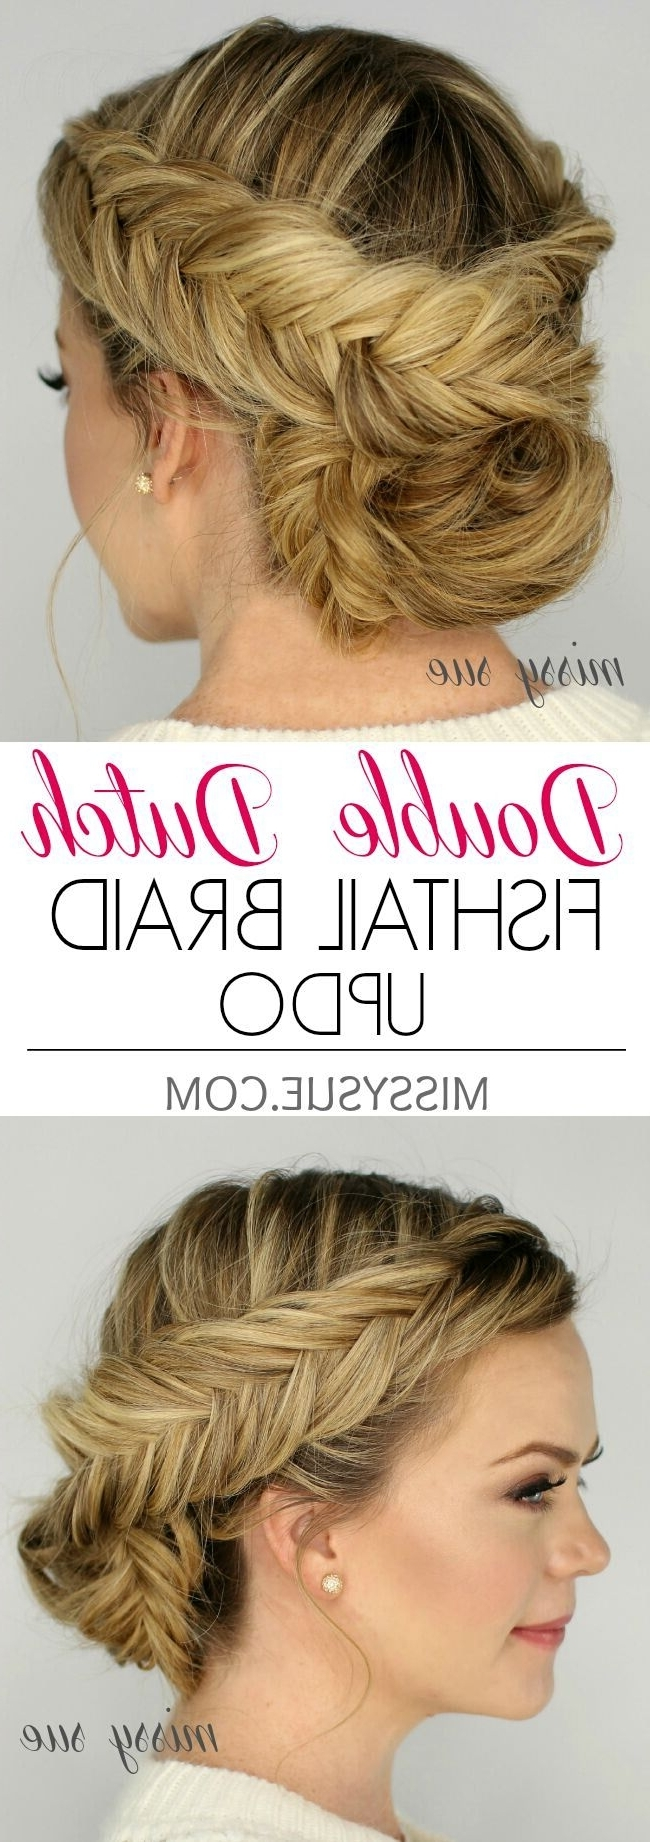 Preferred French Braids Crown And Side Fishtail Pertaining To 21 All New French Braid Updo Hairstyles – Popular Haircuts (View 13 of 15)